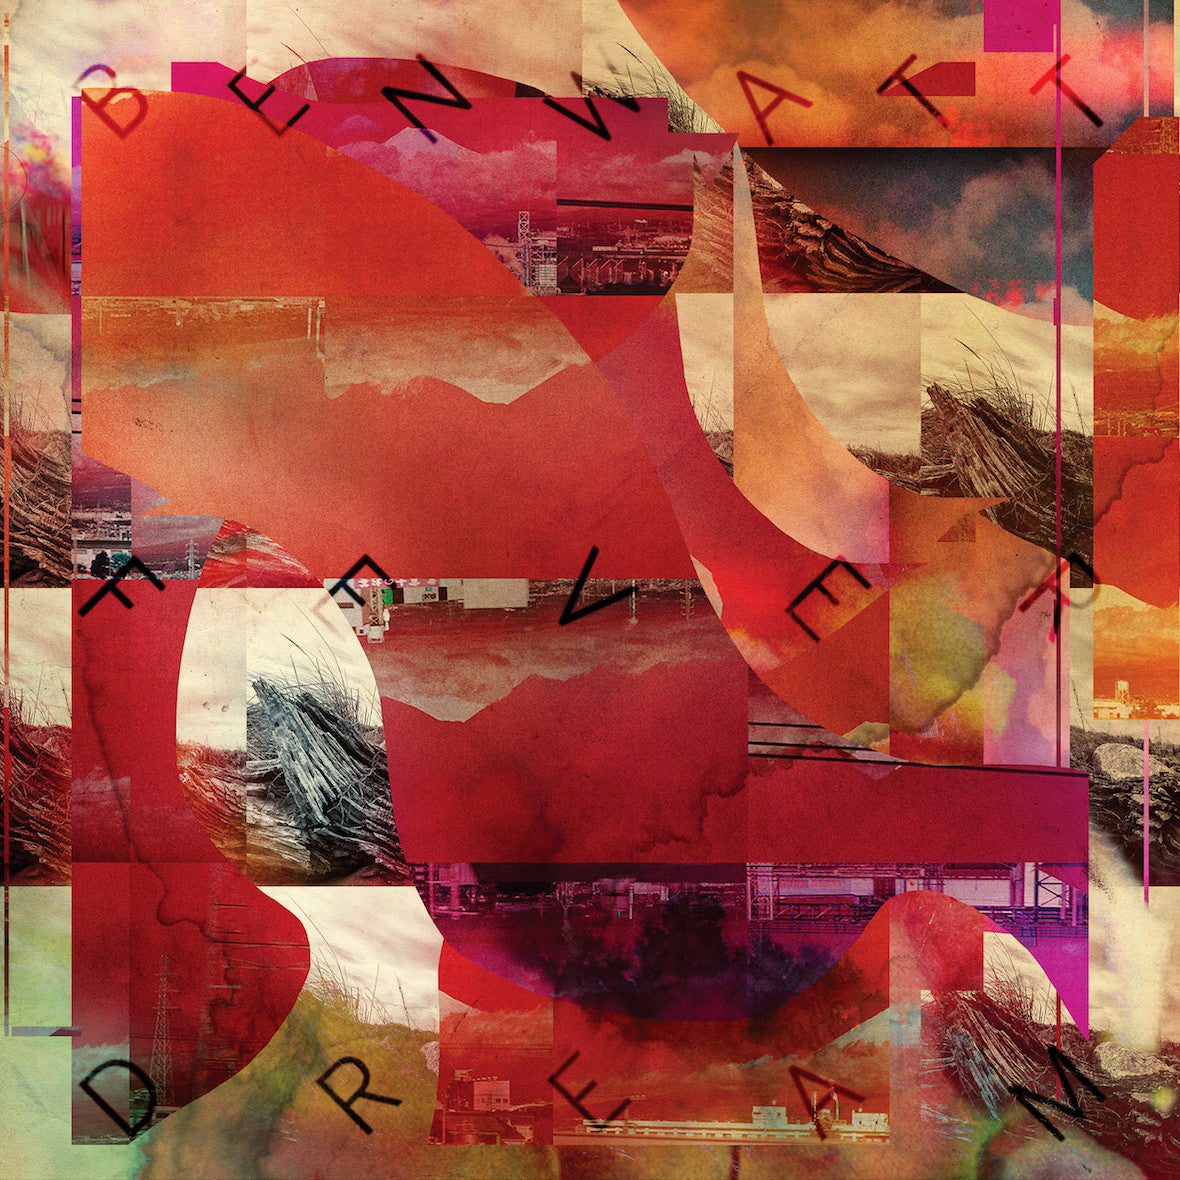 Ben Watt - Fever Dream (Vinyl LP)